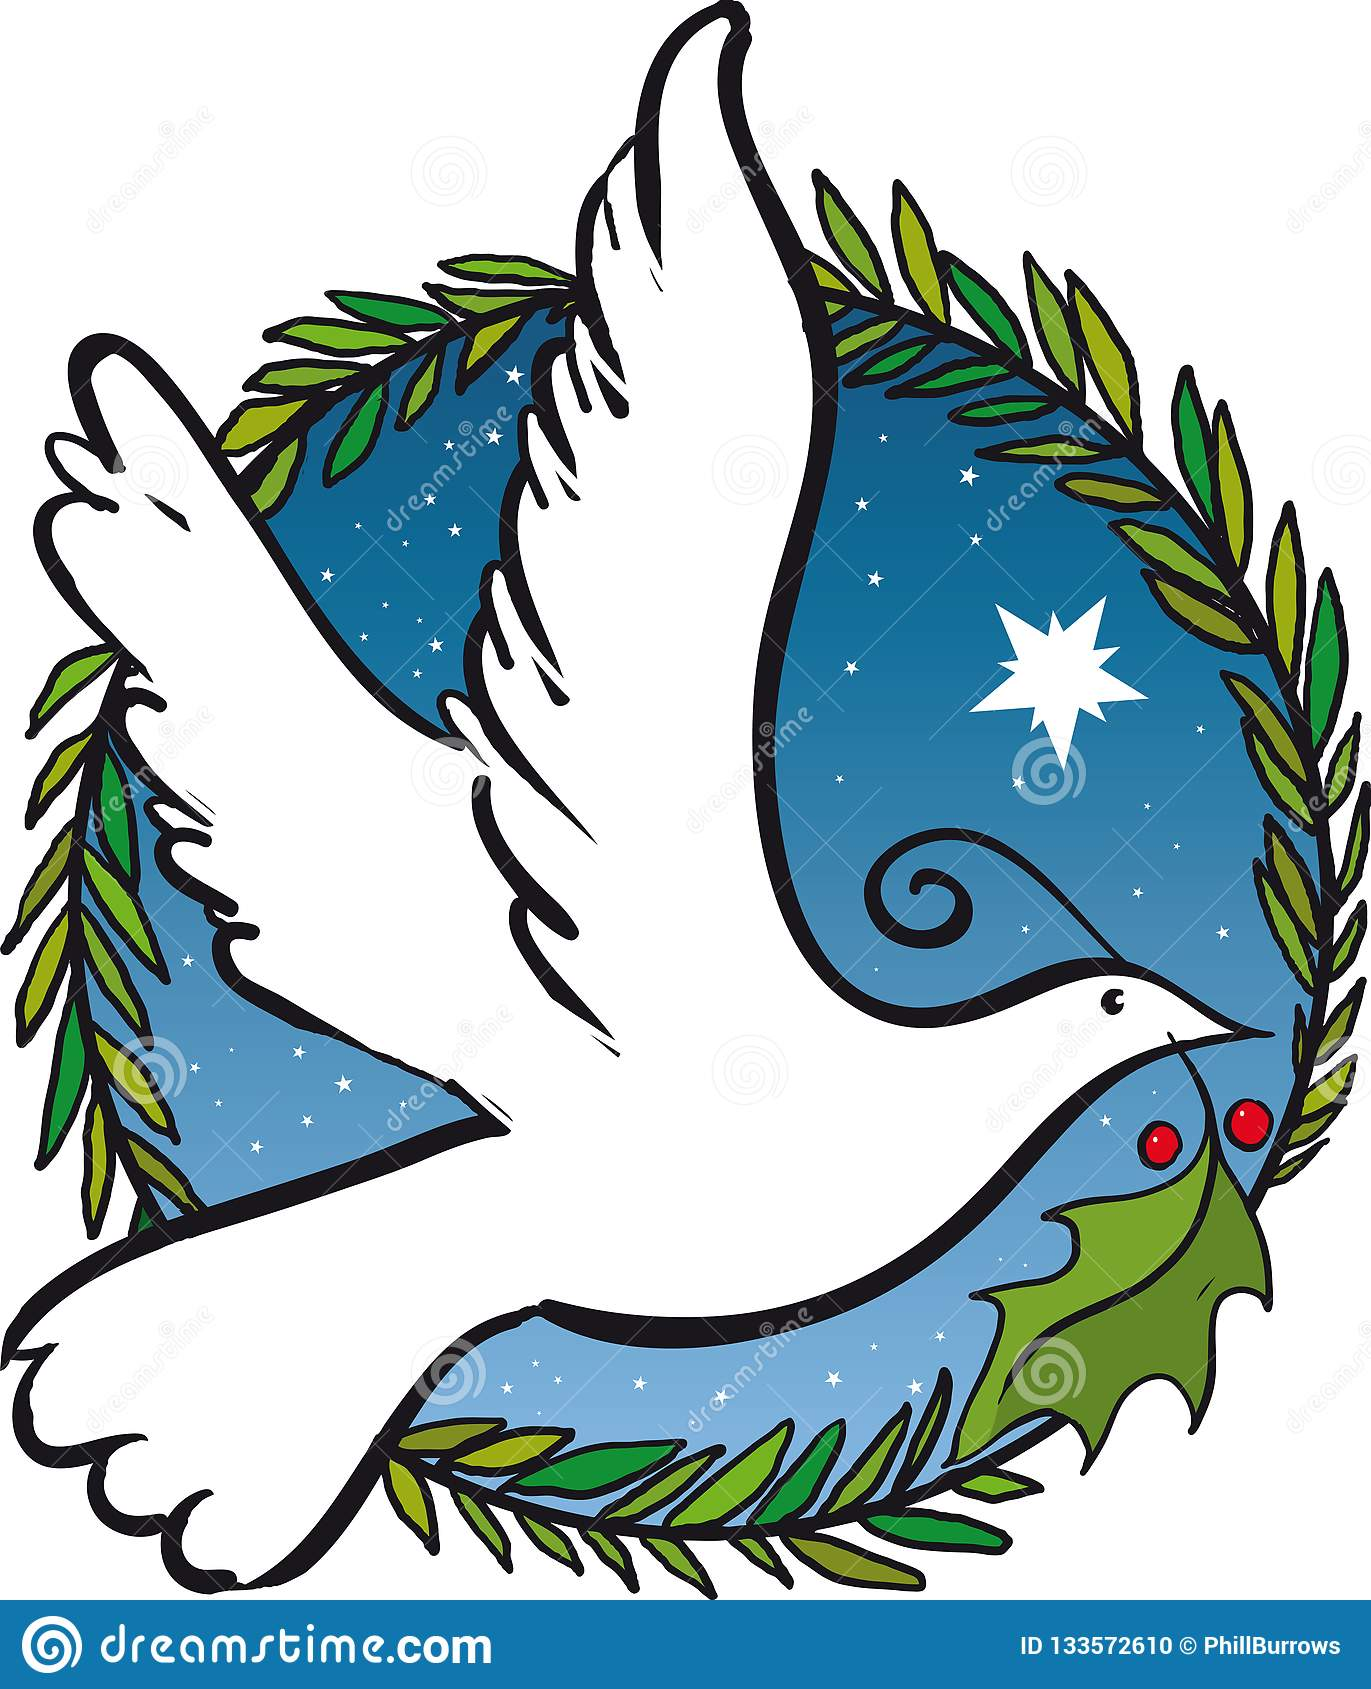 Peace White Bird Free Images Merry Christmas 2021 Flying Christmas Dove Of Peace Stock Vector Illustration Of Background Symbol 133572610